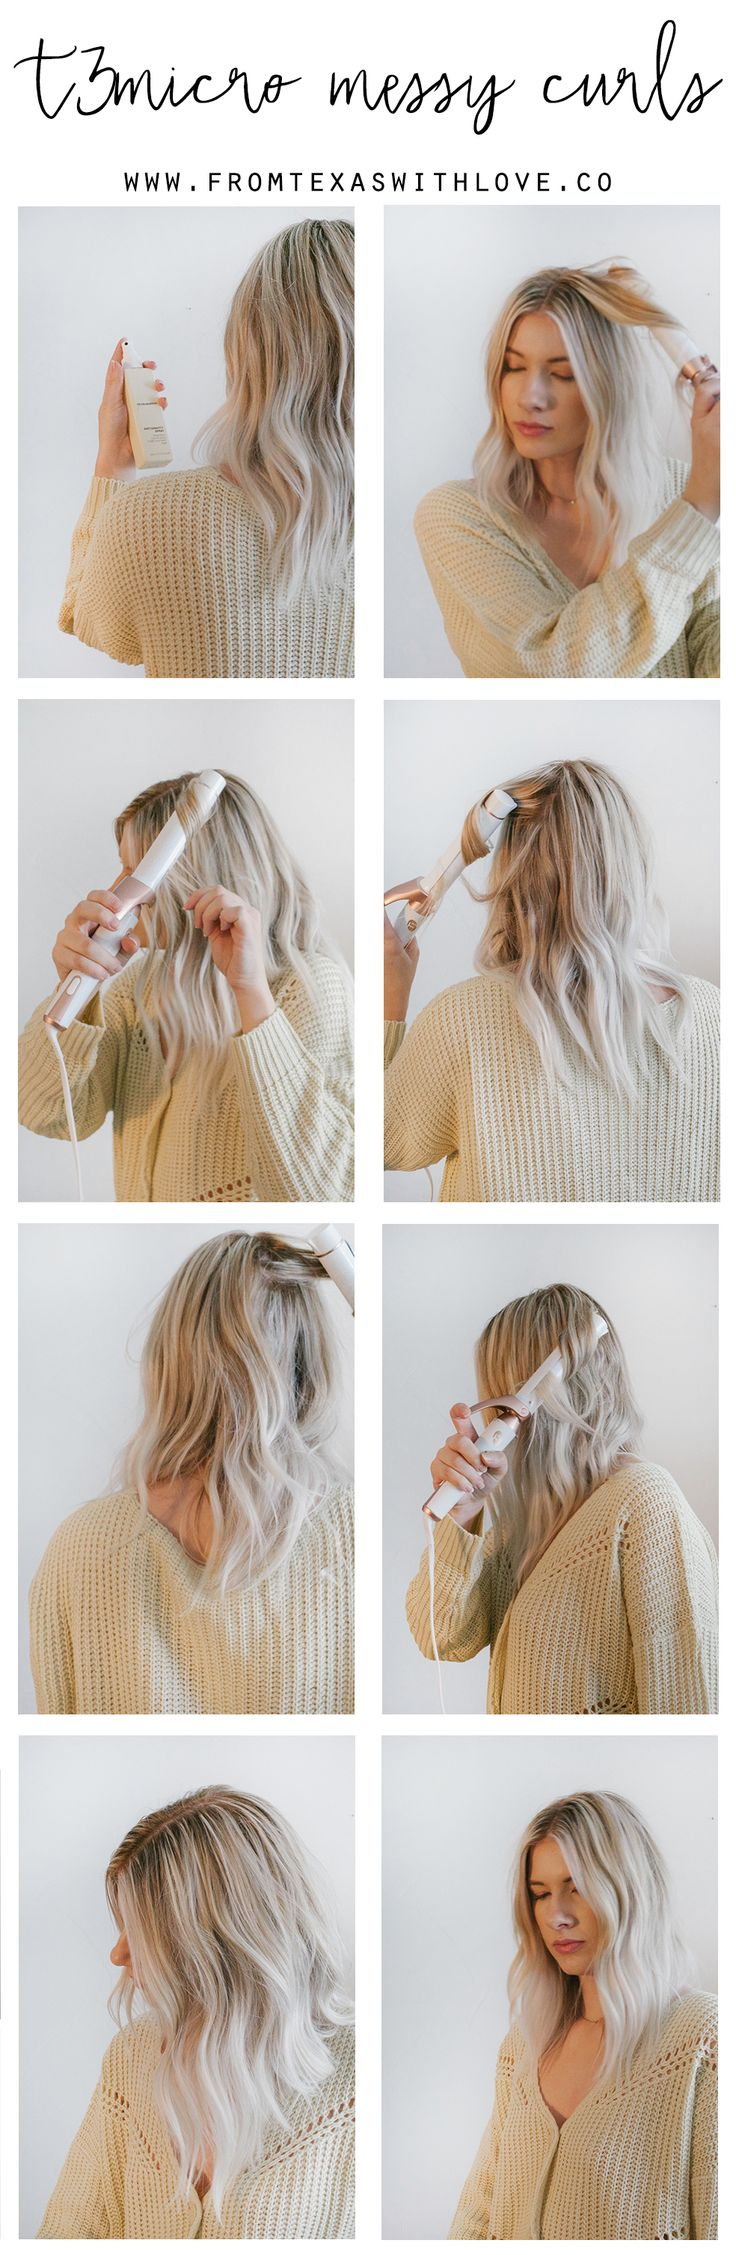 Messy Curls Tutorial - From Texas with Love by Sara Rash